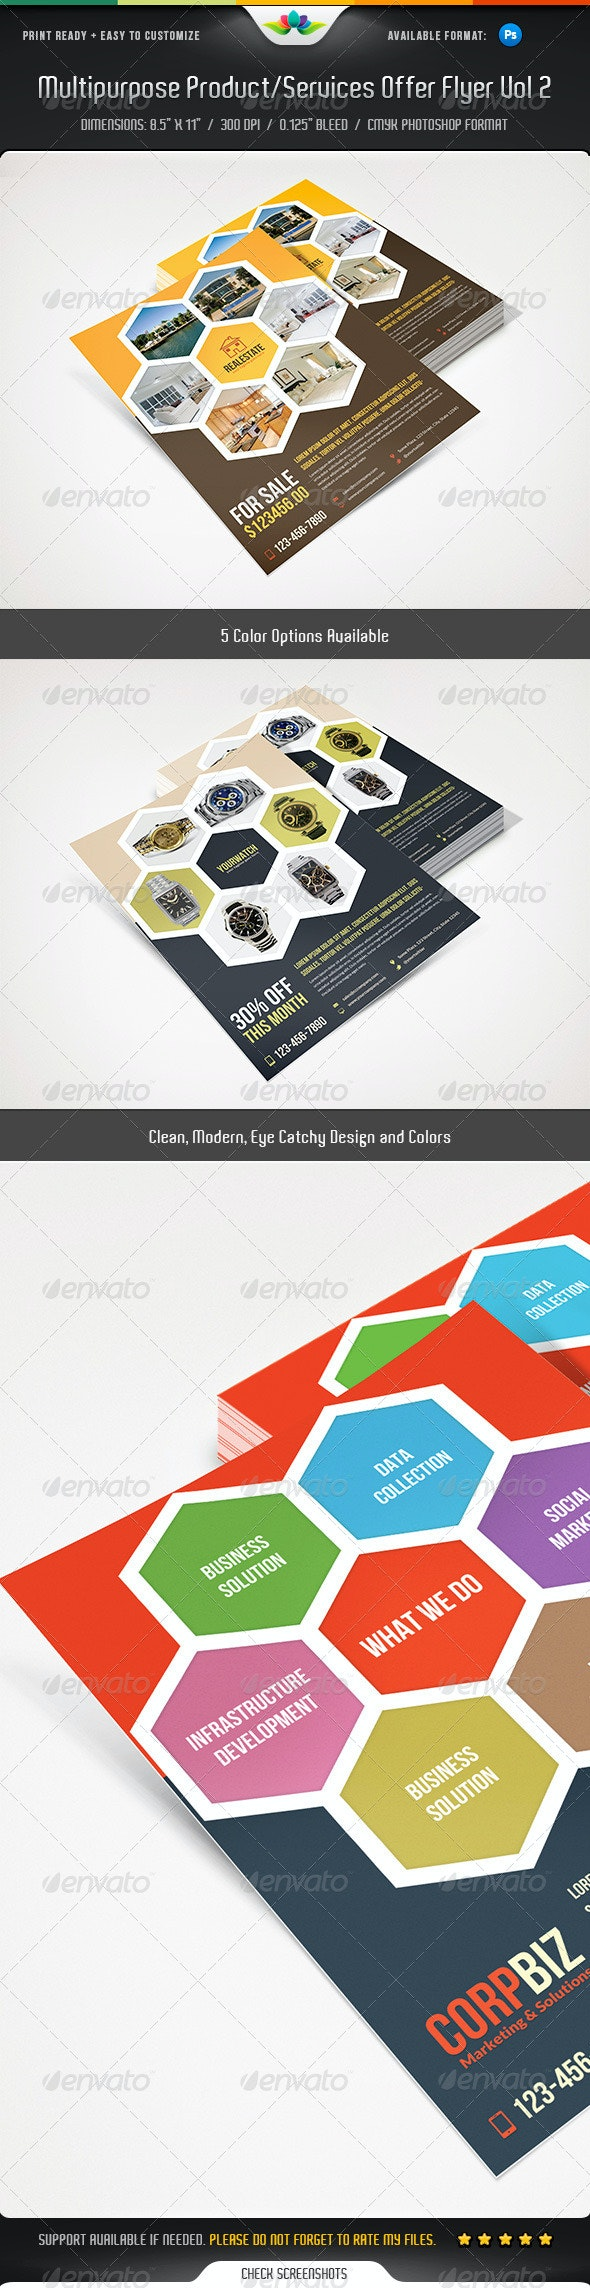 Multipurpose Product / Services Offer Flyer Vol 2 - Corporate Flyers